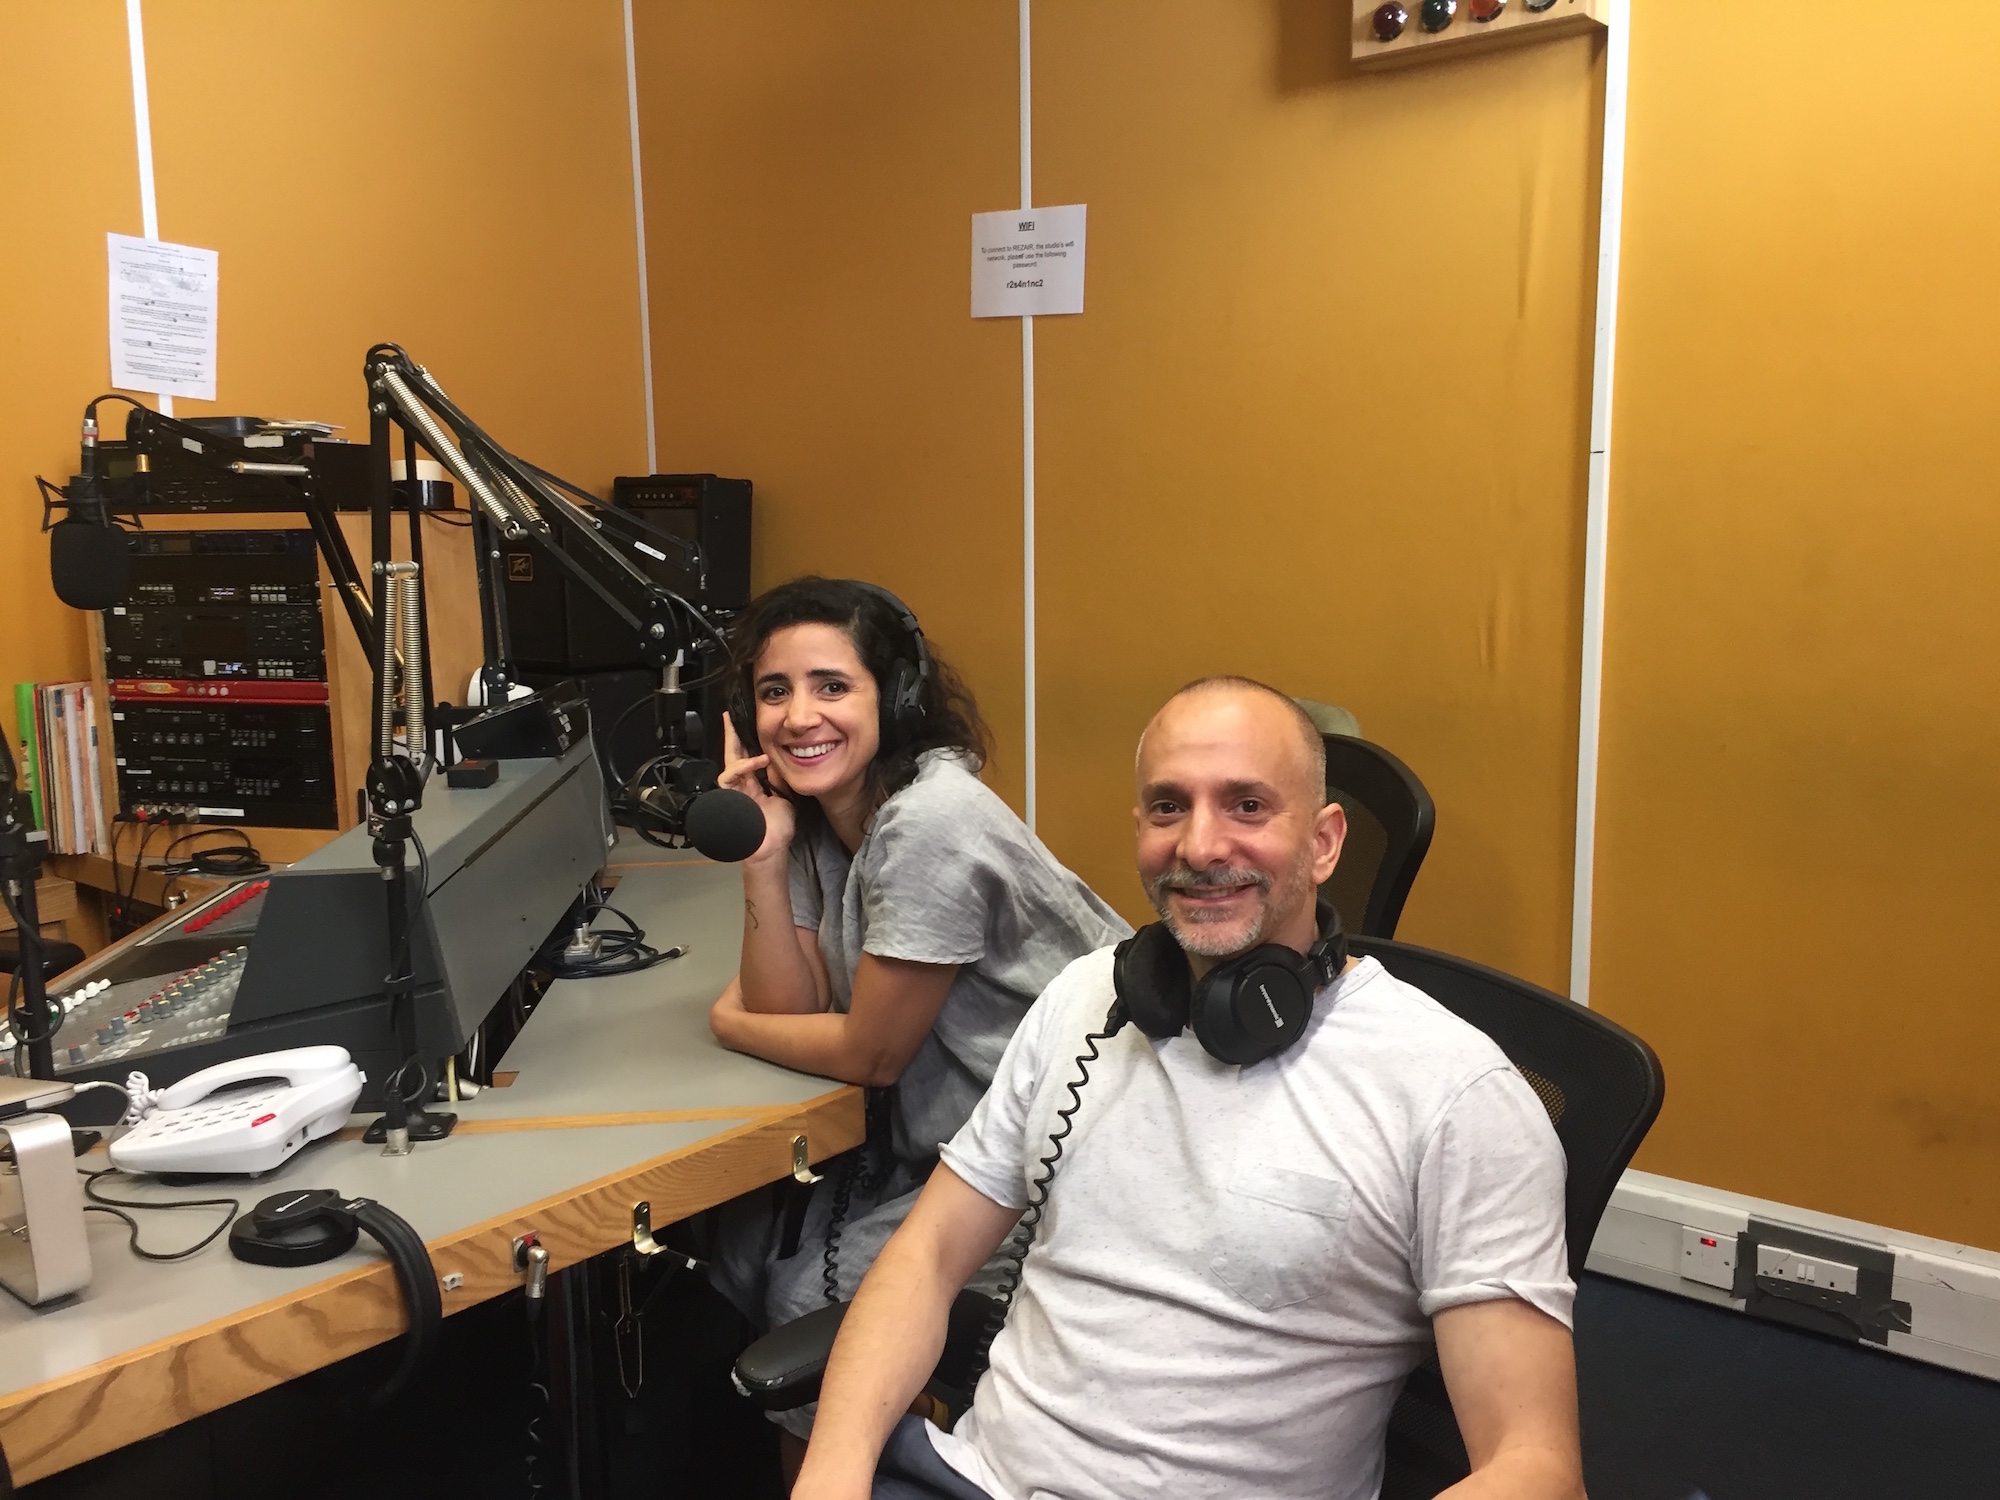 Joshua Sofaer and Tania El Khoury sit side by side in a radio recording studio